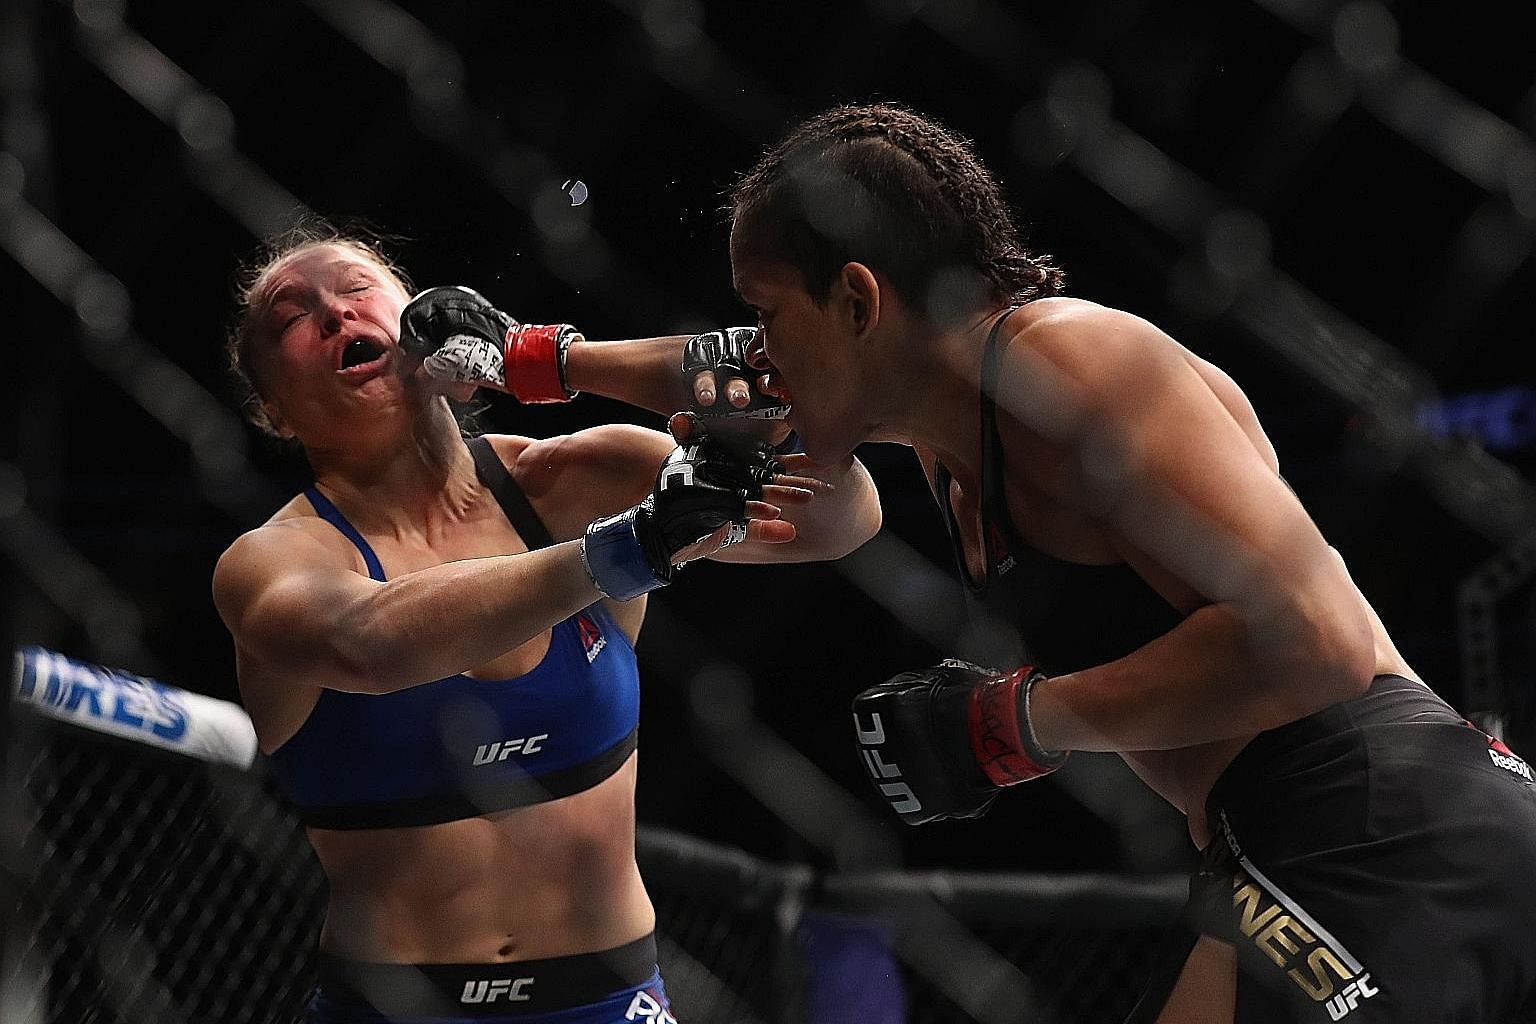 Brazilian Amanda Nunes delivering a punch on Ronda Rousey during their bantamweight championship bout. Having taken a 13-month break from fighting competitively, the American's comeback ended in defeat.